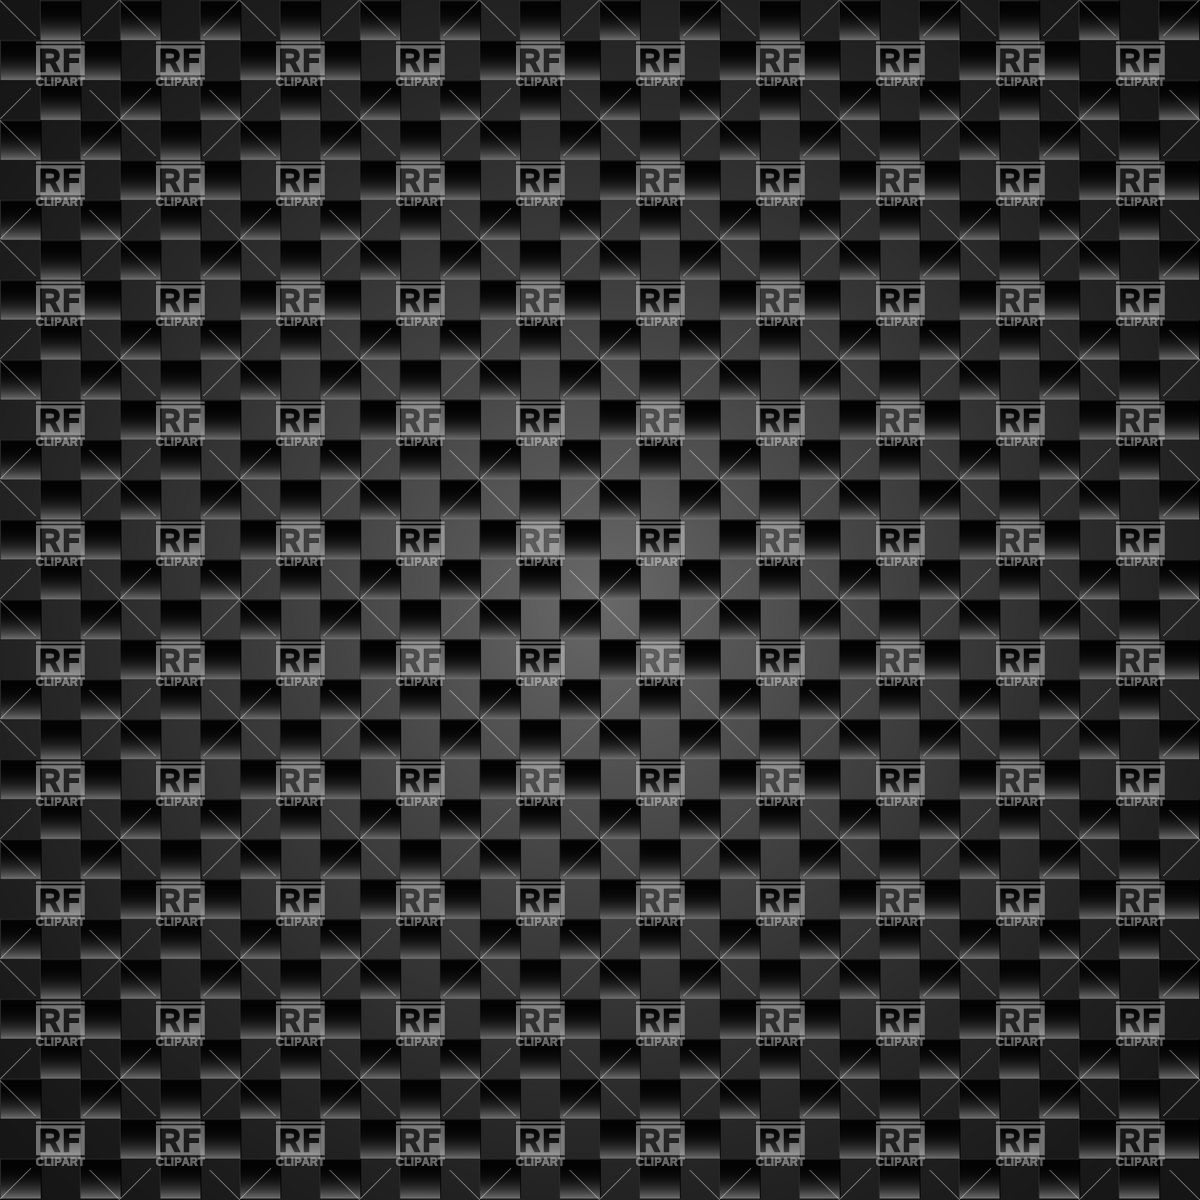 1200x1200 Dark Carbon Fiber Weave Background Or Texture Vector Image